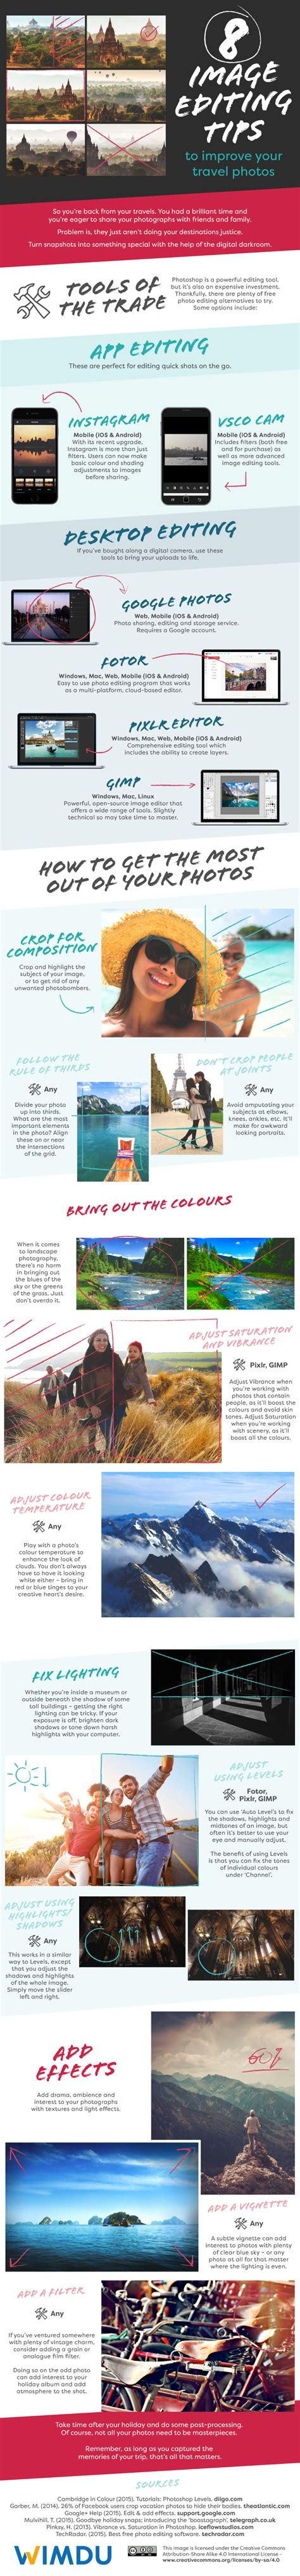 travel photography ideas improve your travel photography with these 8 image editing